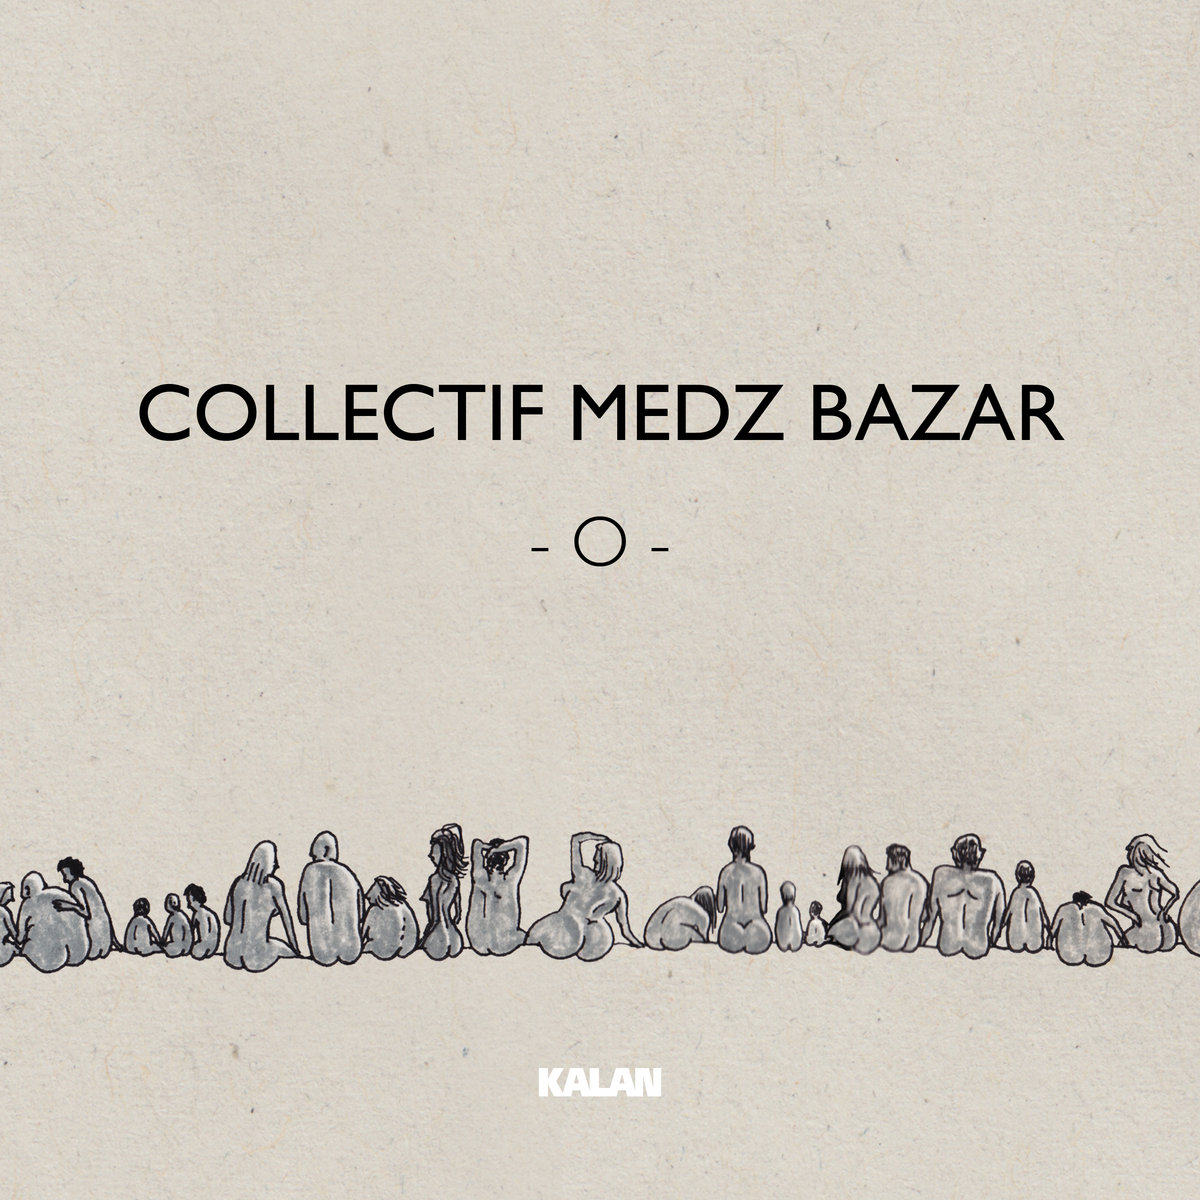 Collectif Medz Bazar O